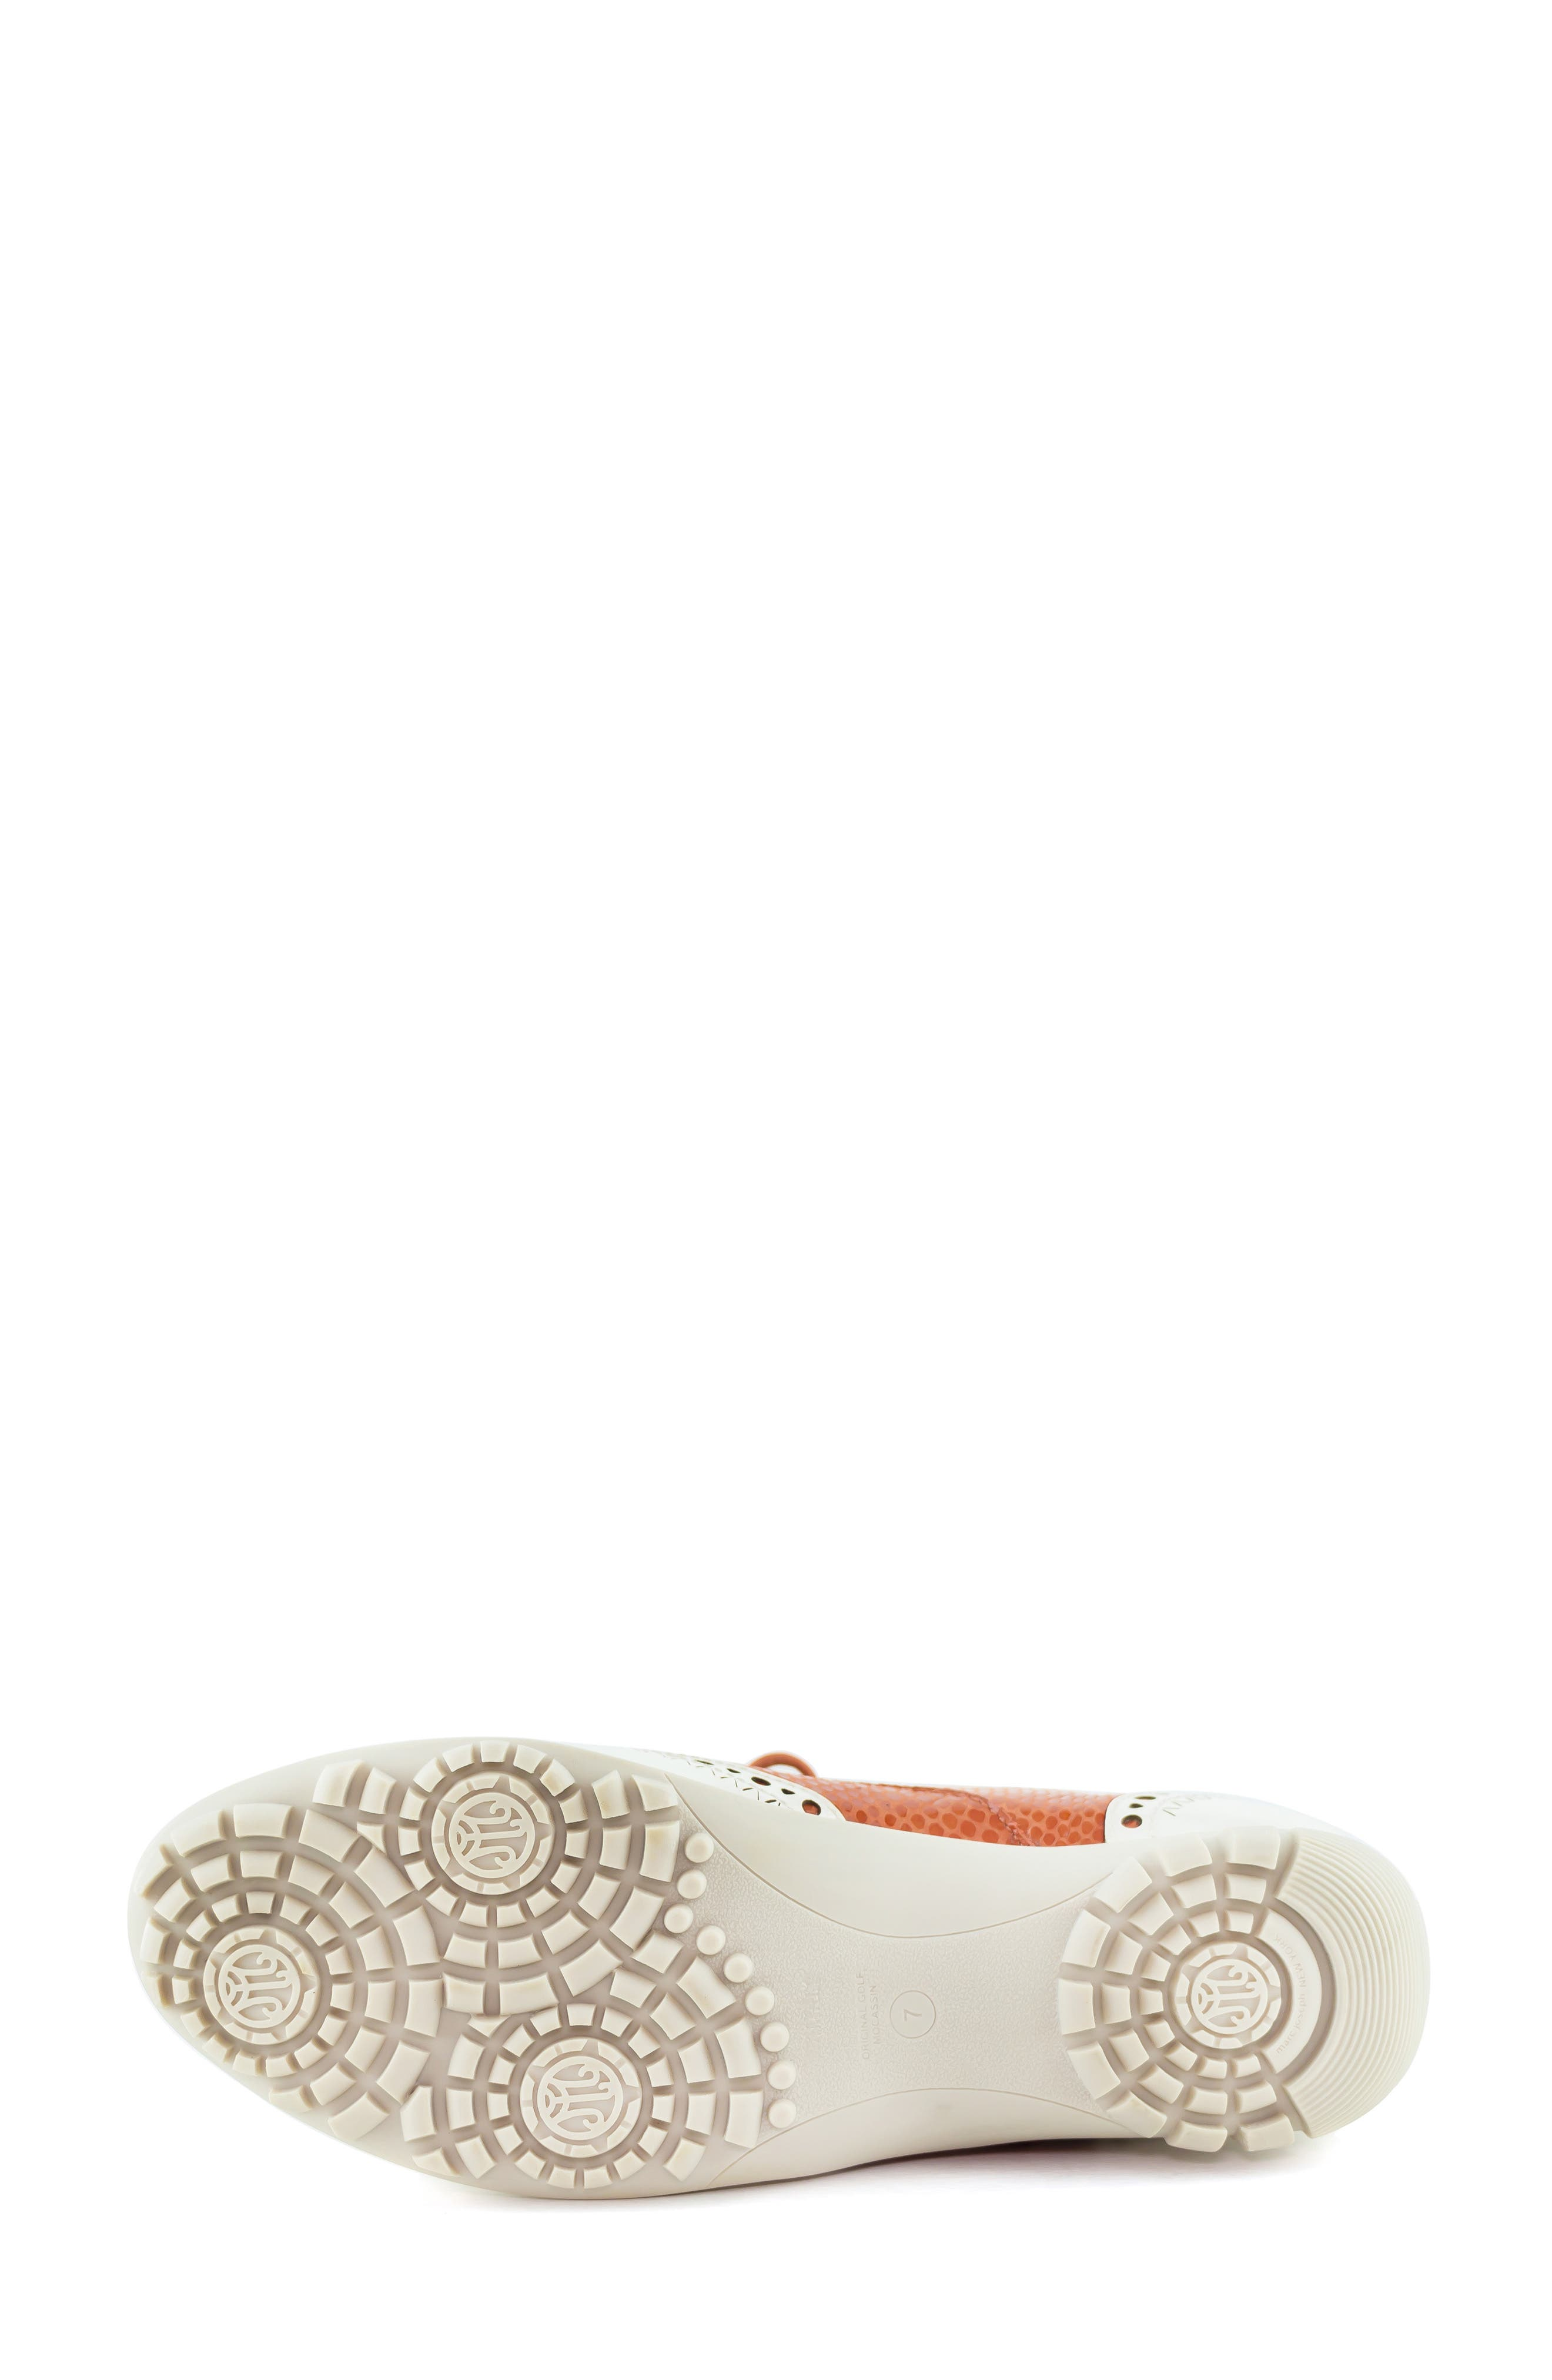 MARC JOSEPH NEW YORK, NYC Golf Loafer, Alternate thumbnail 6, color, CORAL SNAKE PRINT LEATHER